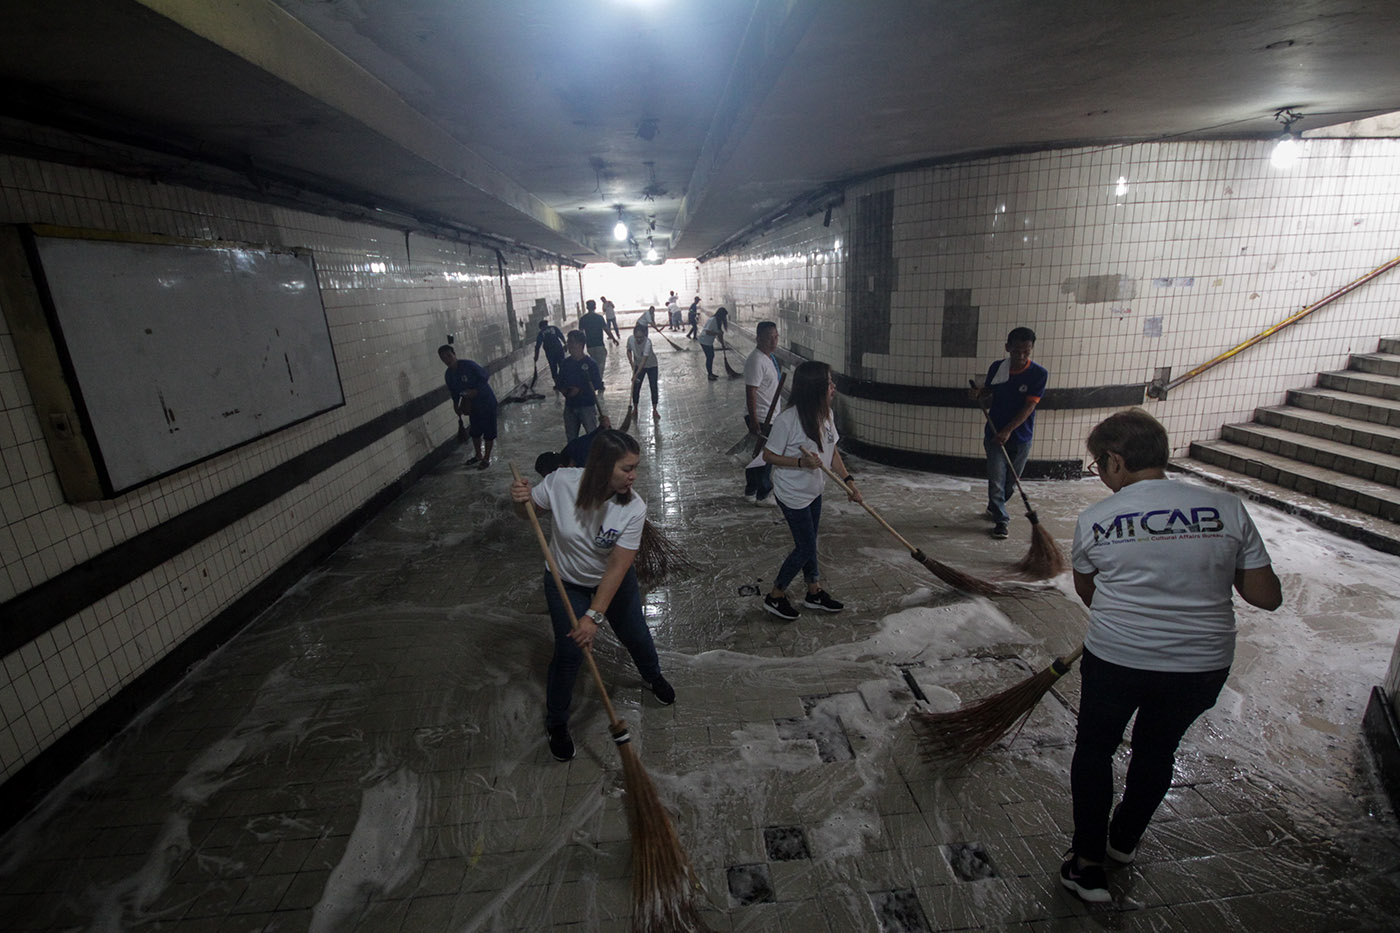 CLEANUP. Personnel conduct clearing operations at the underpass near Manila City Hall on July 16, 2019. Photo by Lito Borras/Rappler